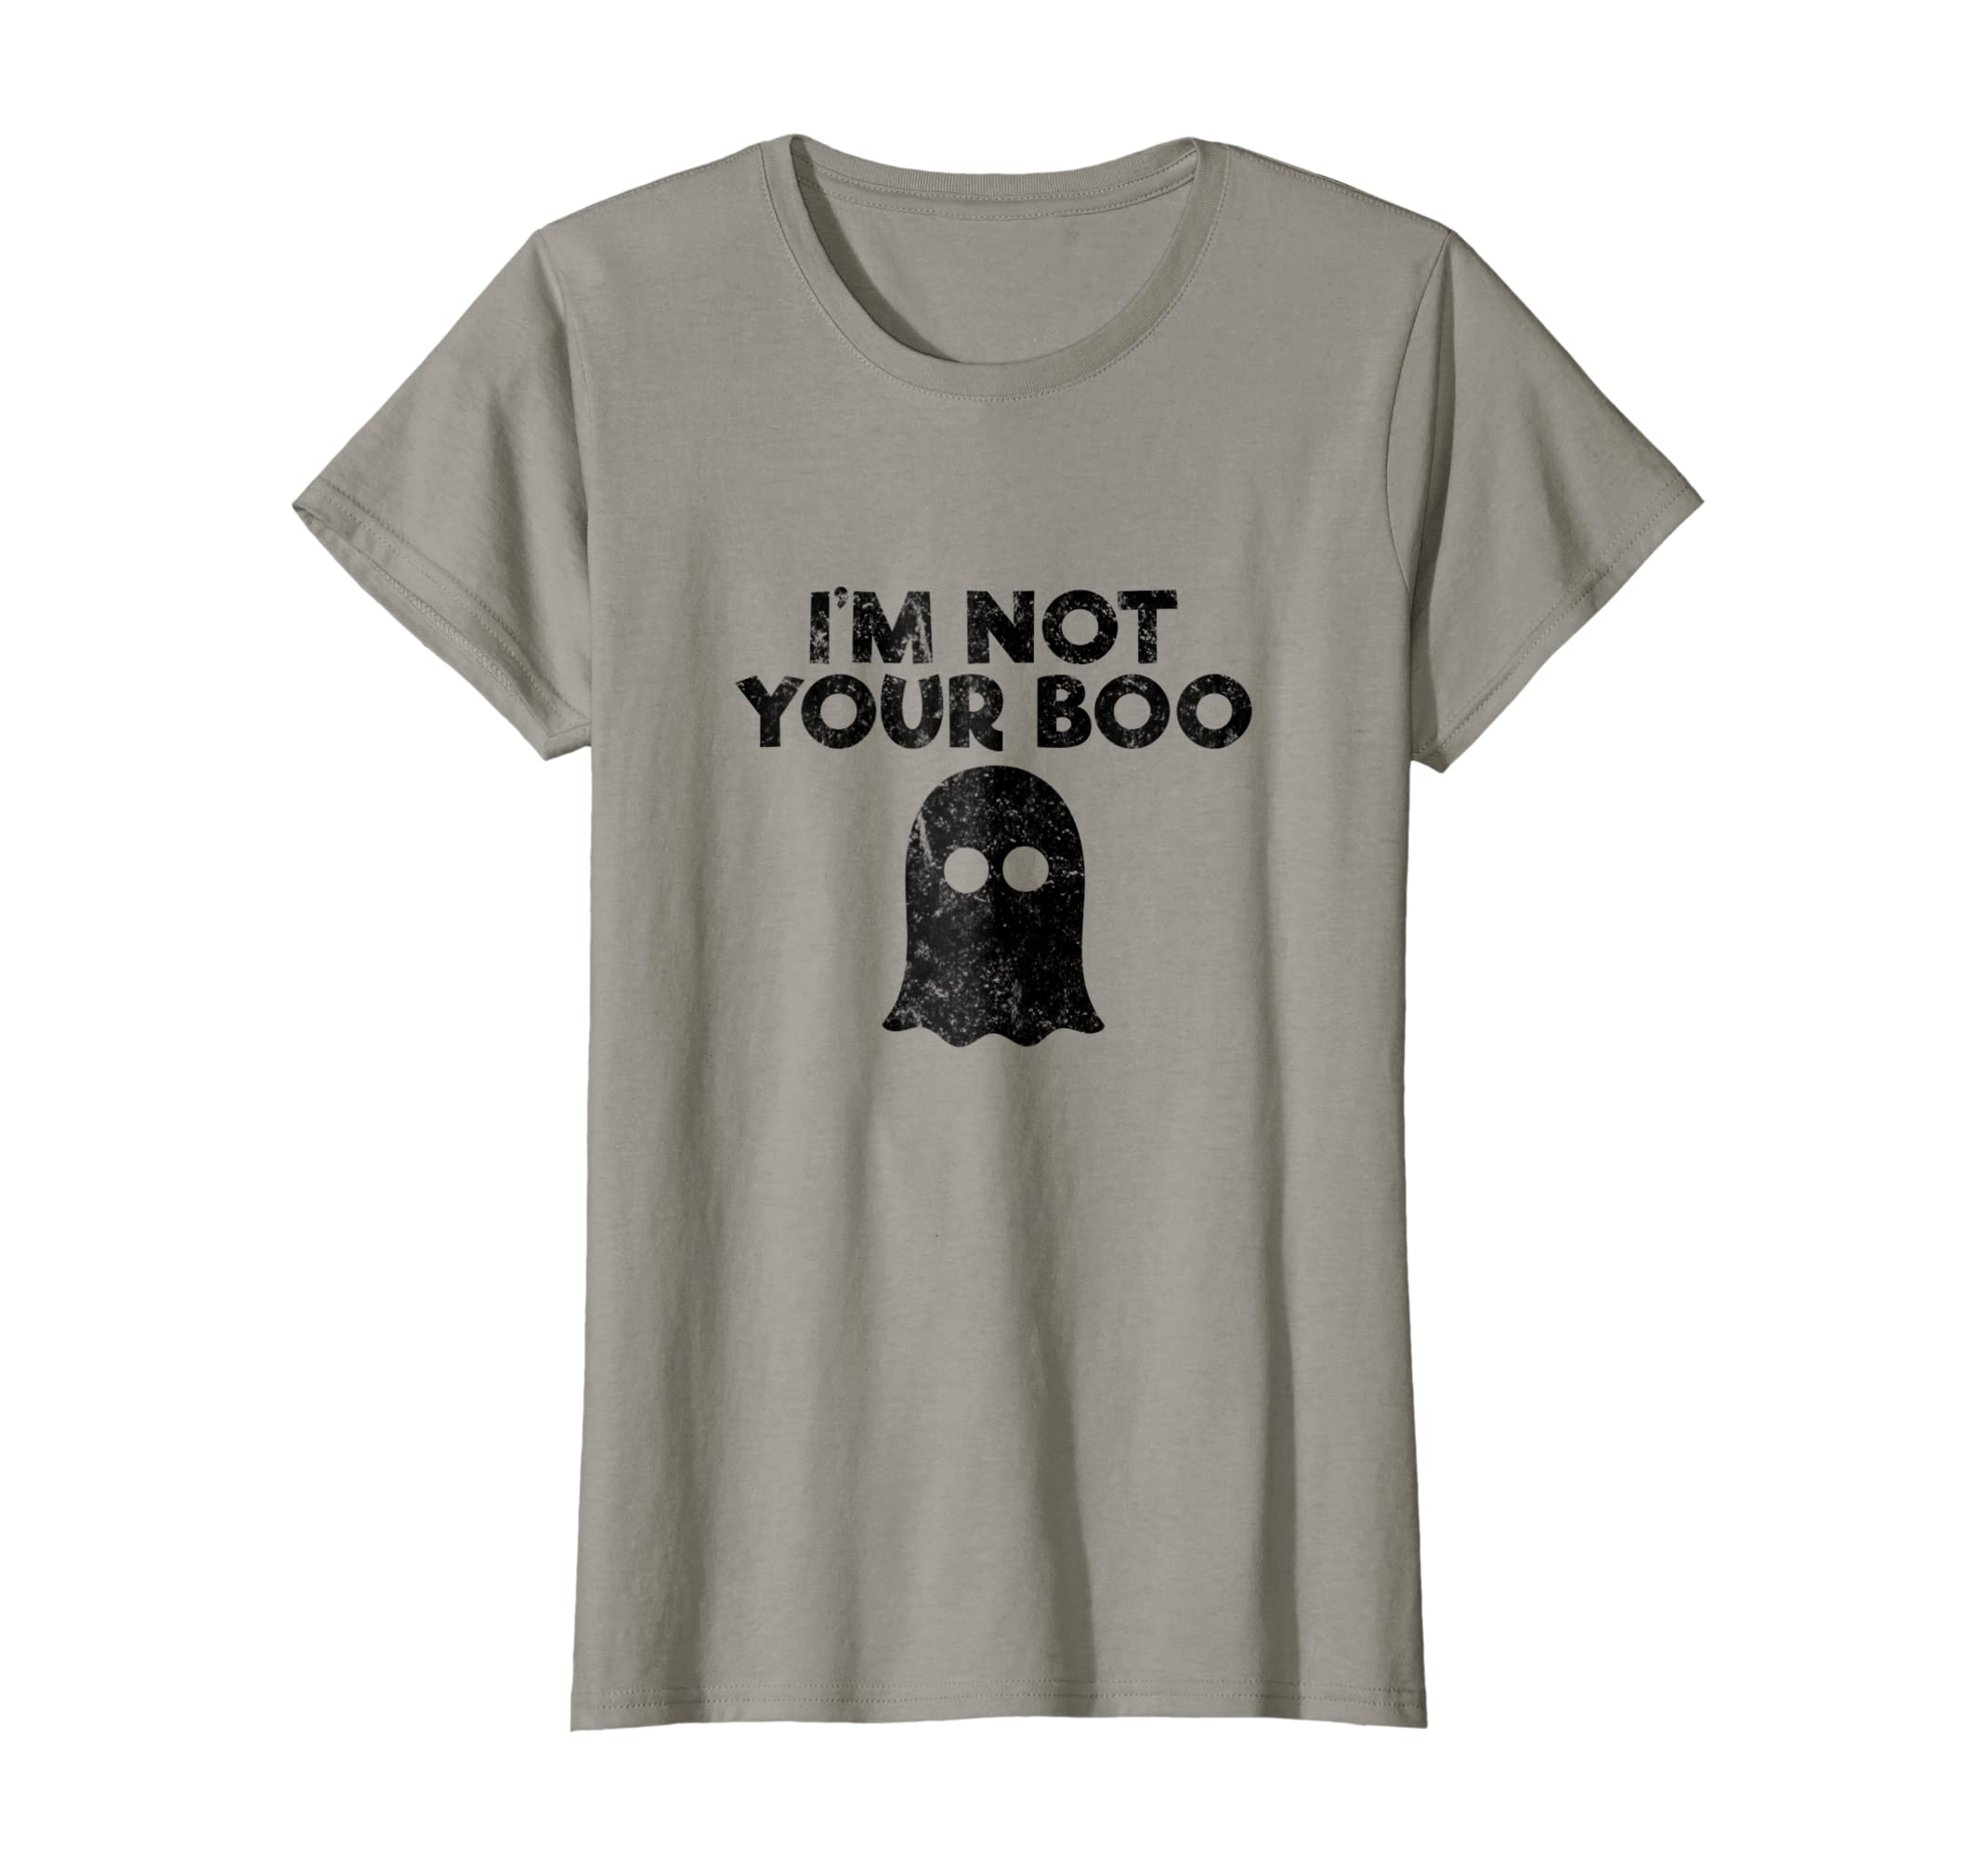 3cc7925f8 Amazon.com: I'm Not Your Boo Funny Halloween Tee Shirt: Clothing